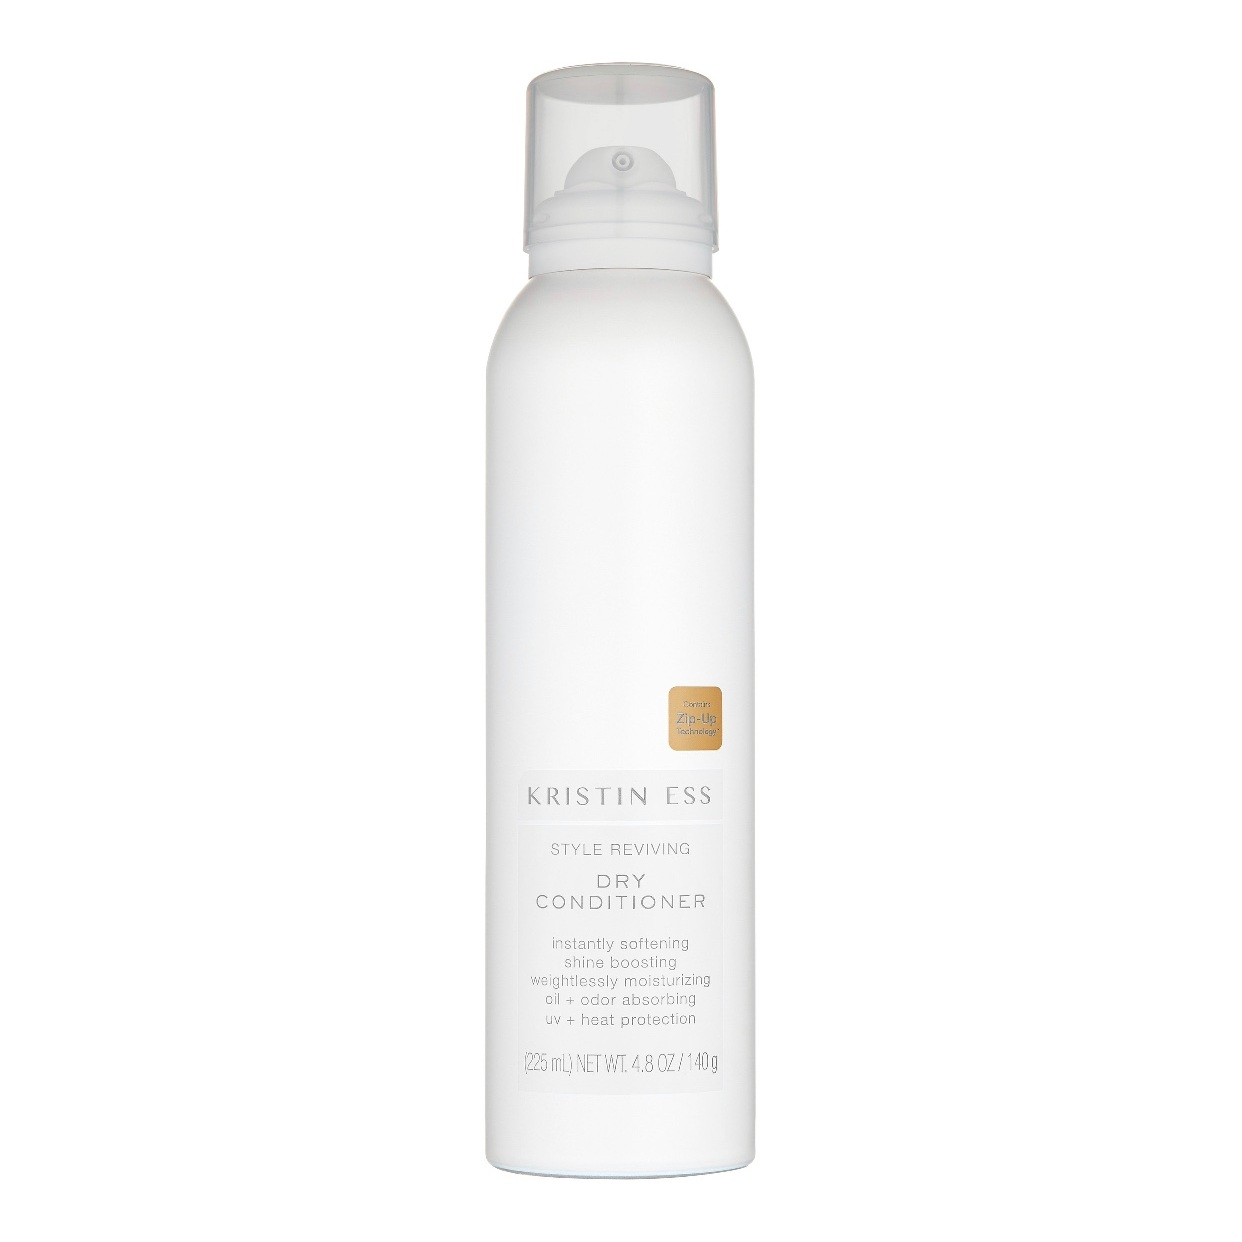 - Dry conditioner is great to get an extra day or 2 out of that perfect blowout. Unlike dry shampoo, it adds moisture to revive style. I wanted to try this since I've loved every product from Kristine Ess so far and this one is no exception!Find it here.